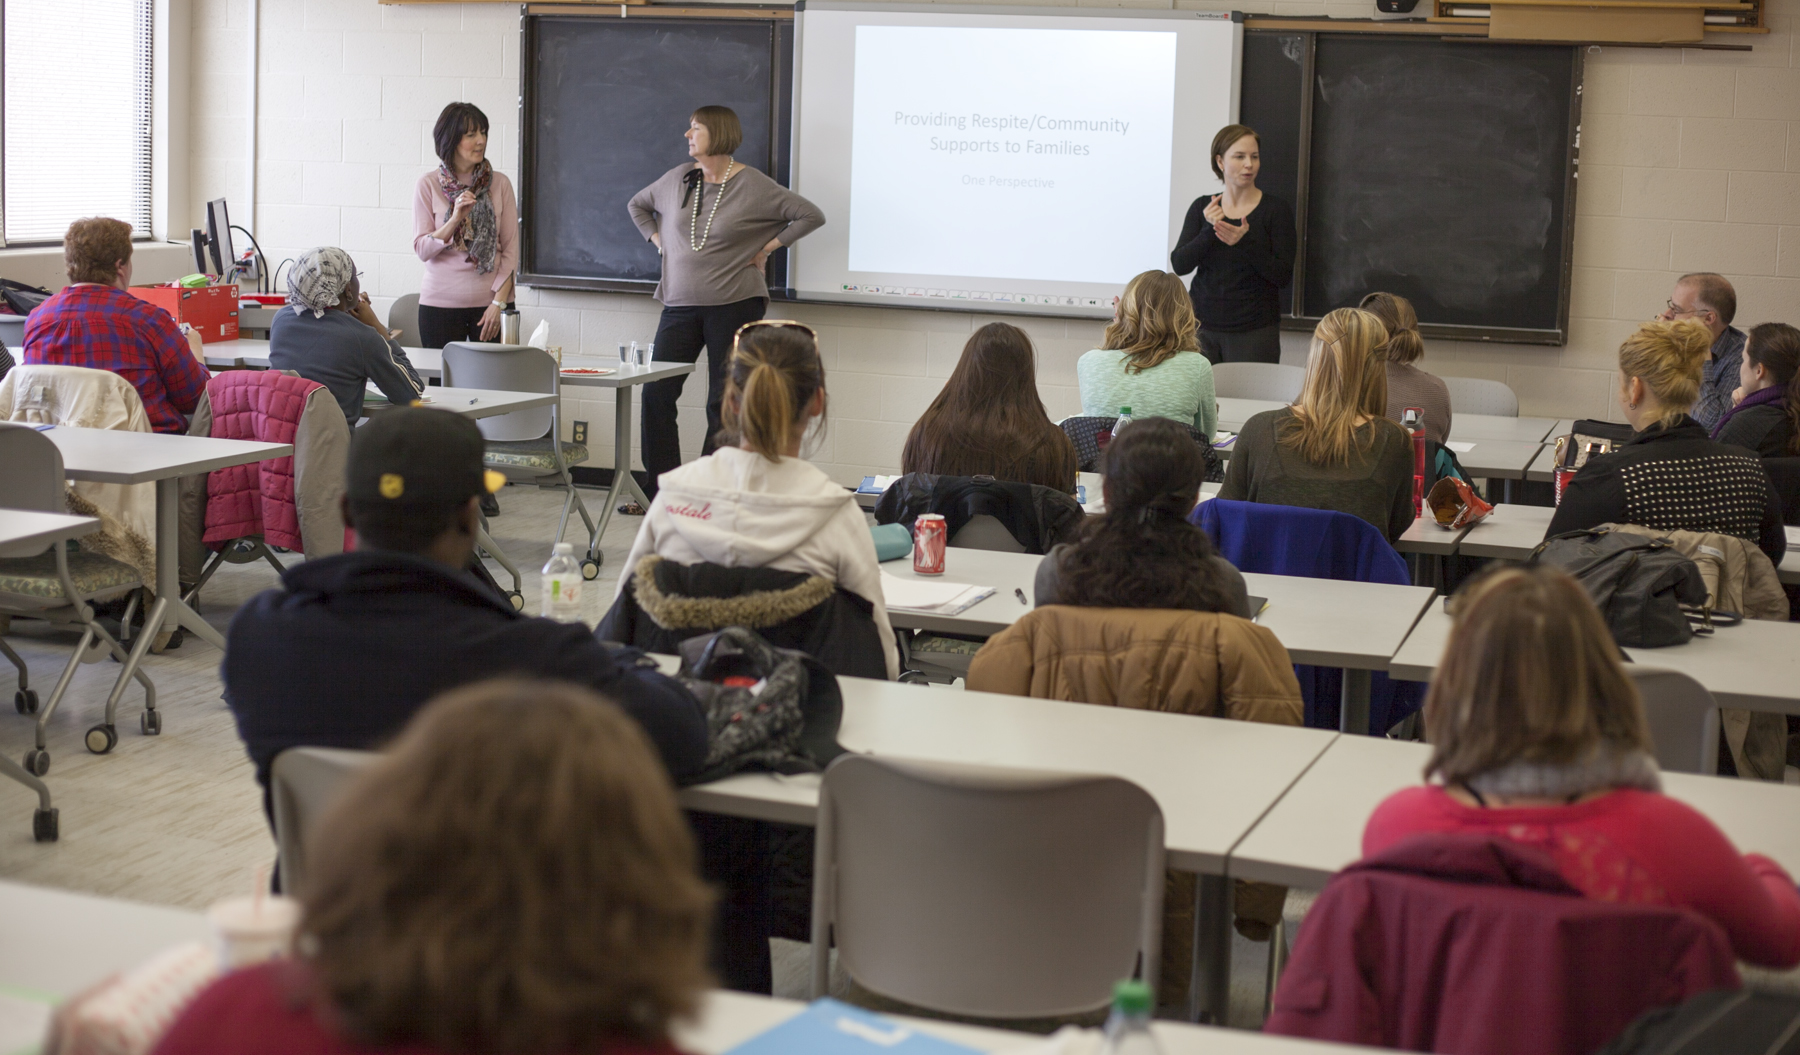 A group of students sit in a classroom and listen to two instructors, who stand at the front of the room. A sign language translator stands to the right side.